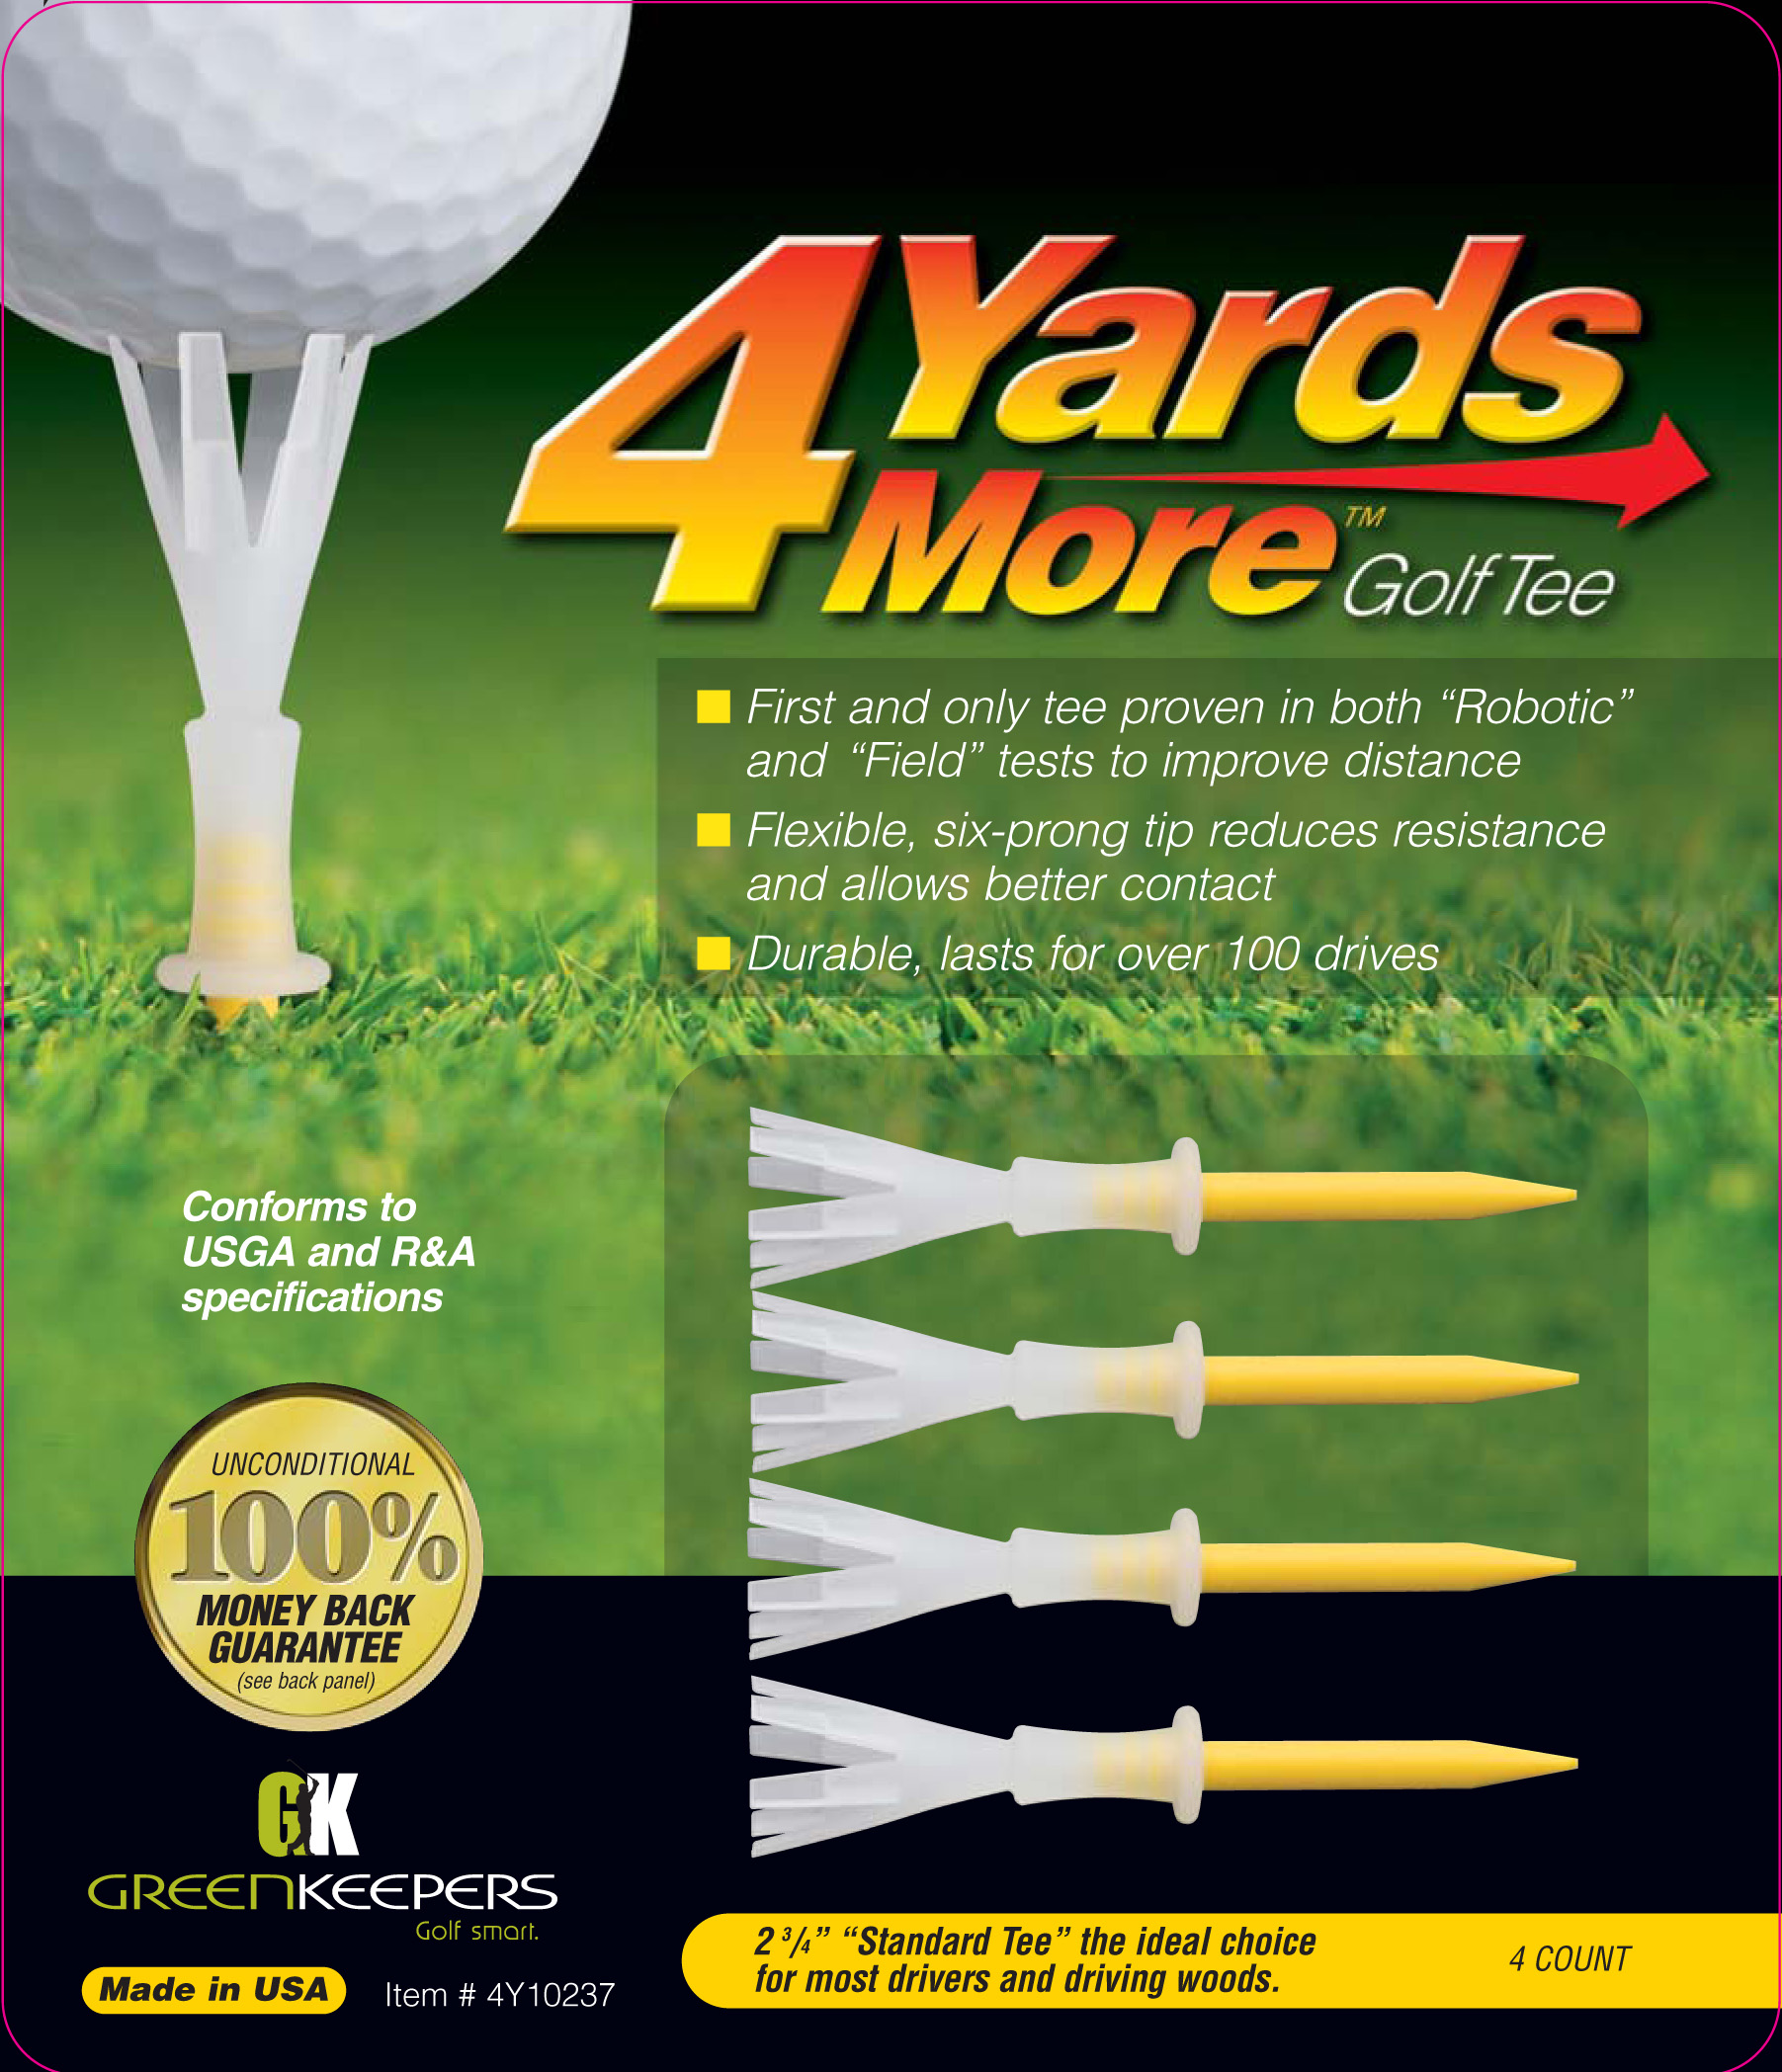 The 4 Yards More Golf Tee is a reusable golf tee that will add more yards to your driving distance. The tee is designed with a rigid polymer stake and a dynamic elastomer crown. The body and individual fingers of the crown flex with the force of the drive